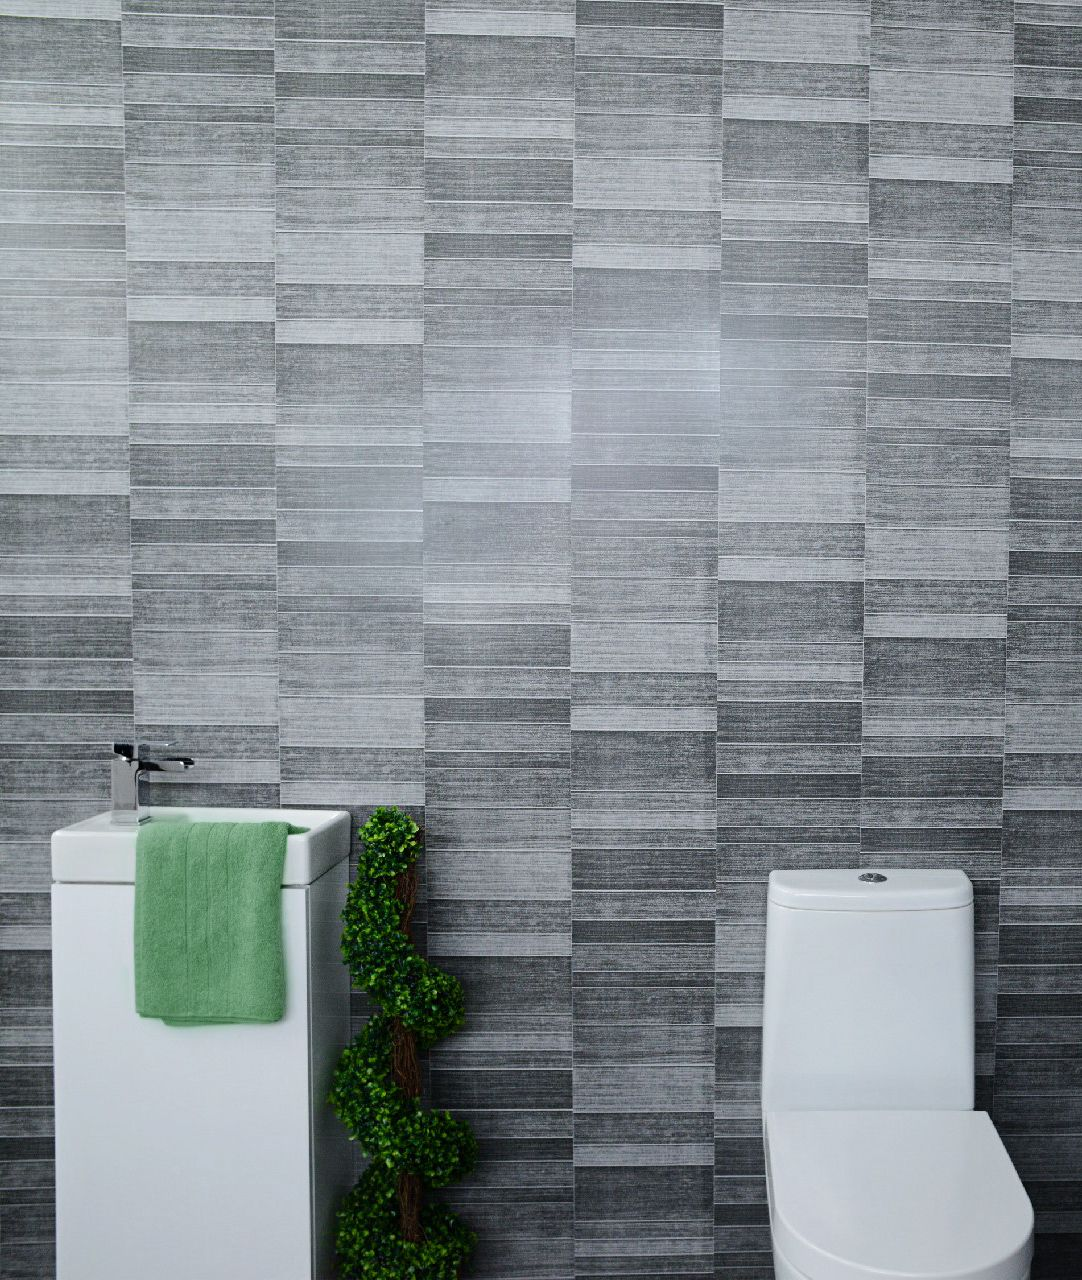 Your Very First Glance Do These Look Like Tiles To You Bathroom Decor Is Not Just About Tiles A Bathroom Wall Cladding Bathroom Wall Panels Bathroom Cladding